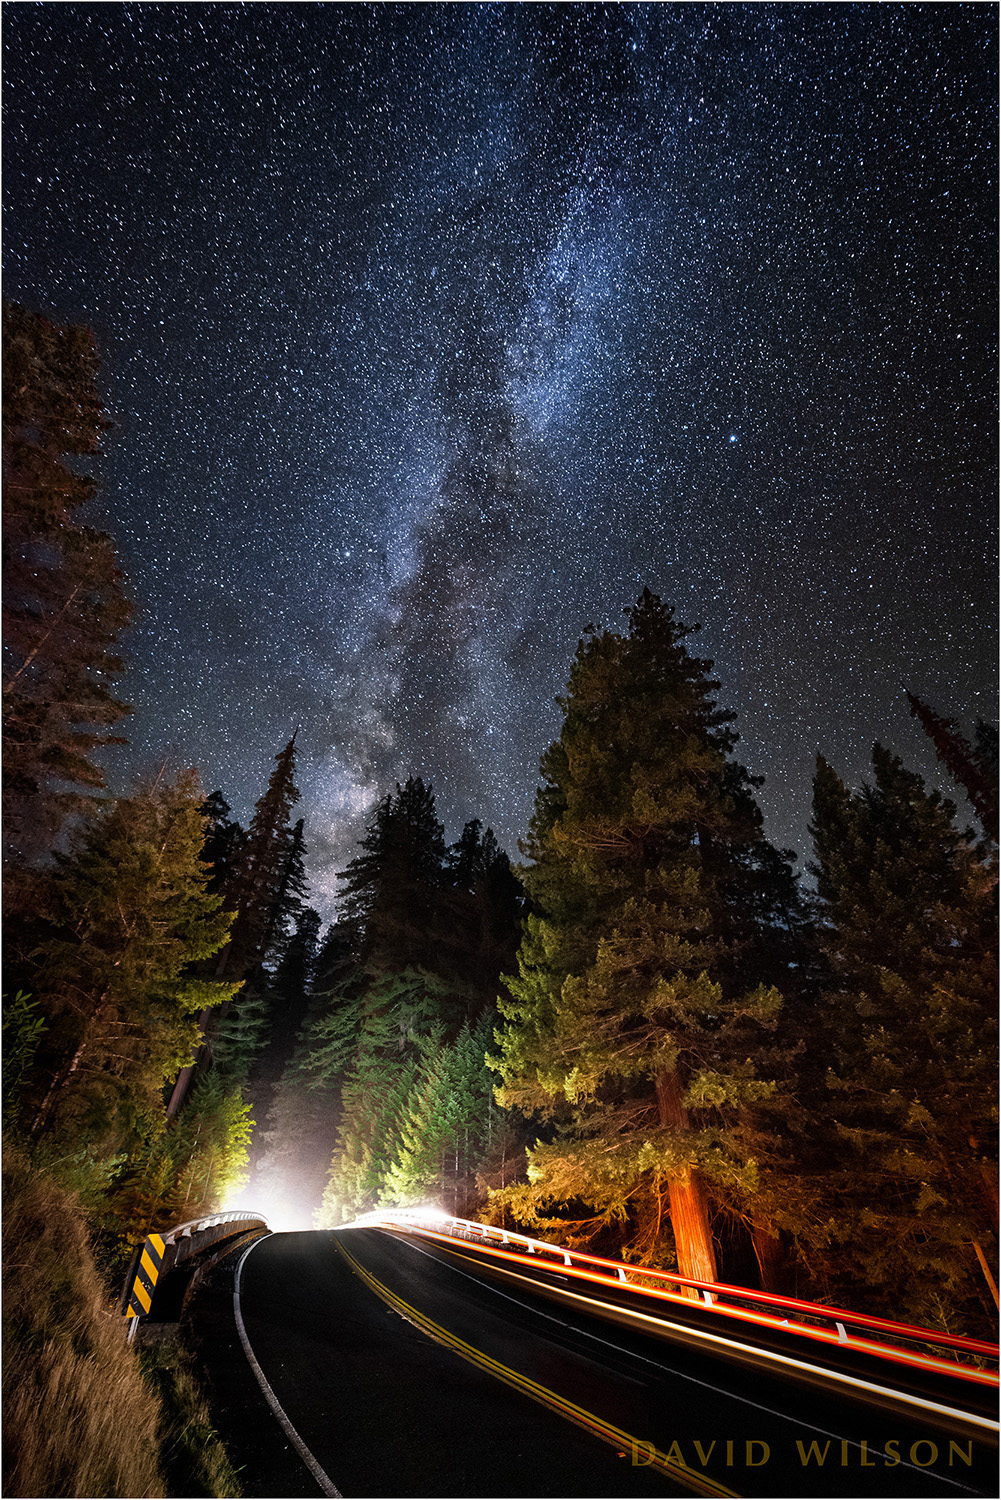 Milky Way over Avenue of the Giants and towering redwoods.